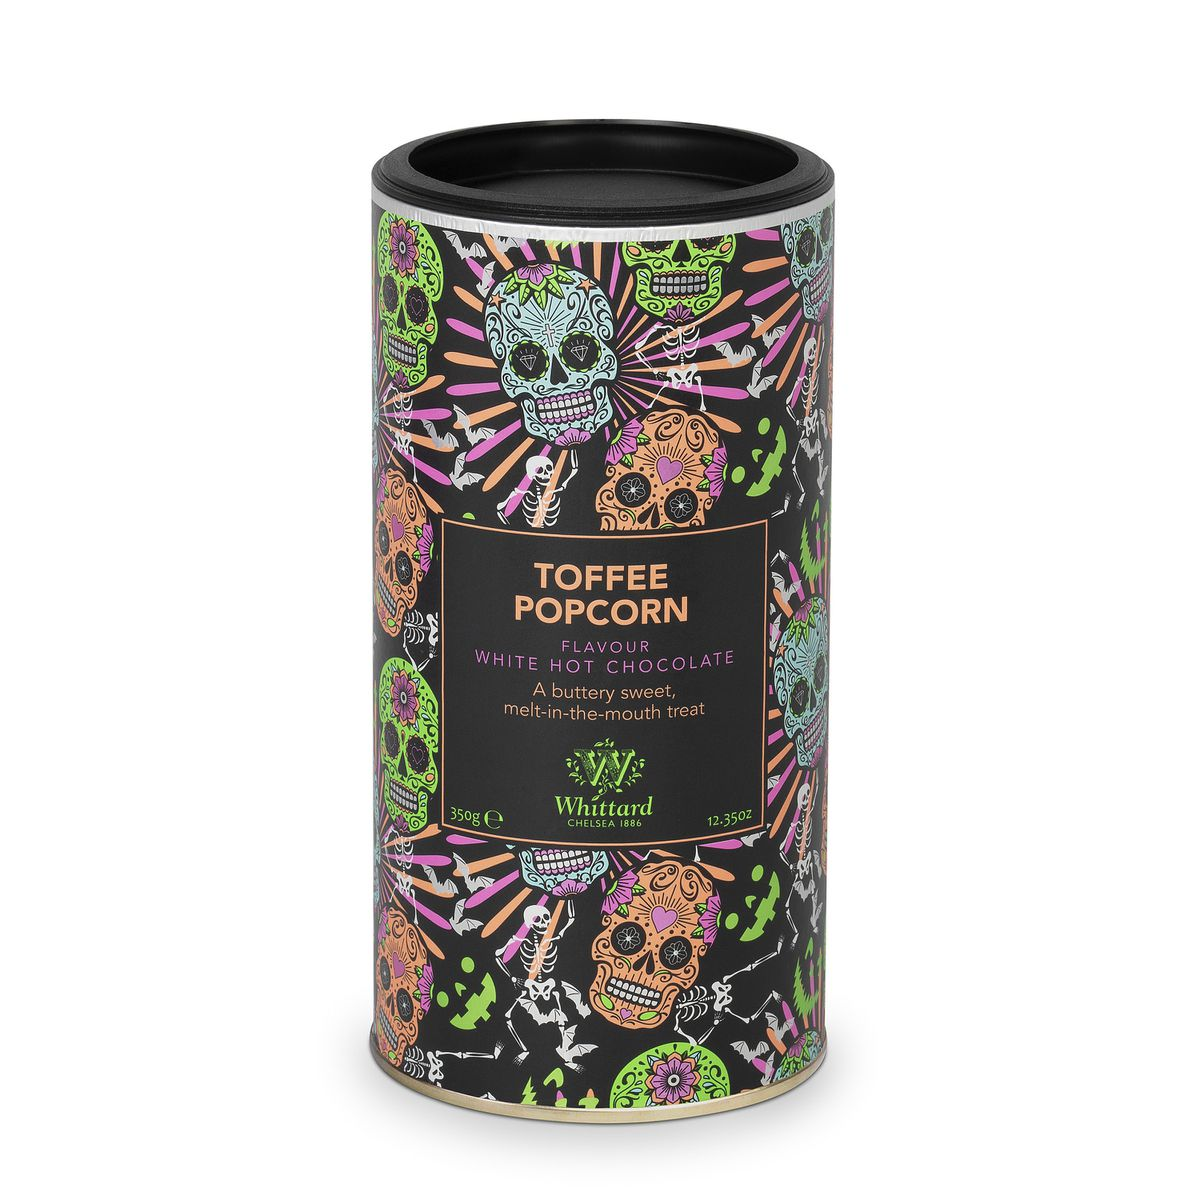 Toffee Popcorn Flavour White Hot Chocolate